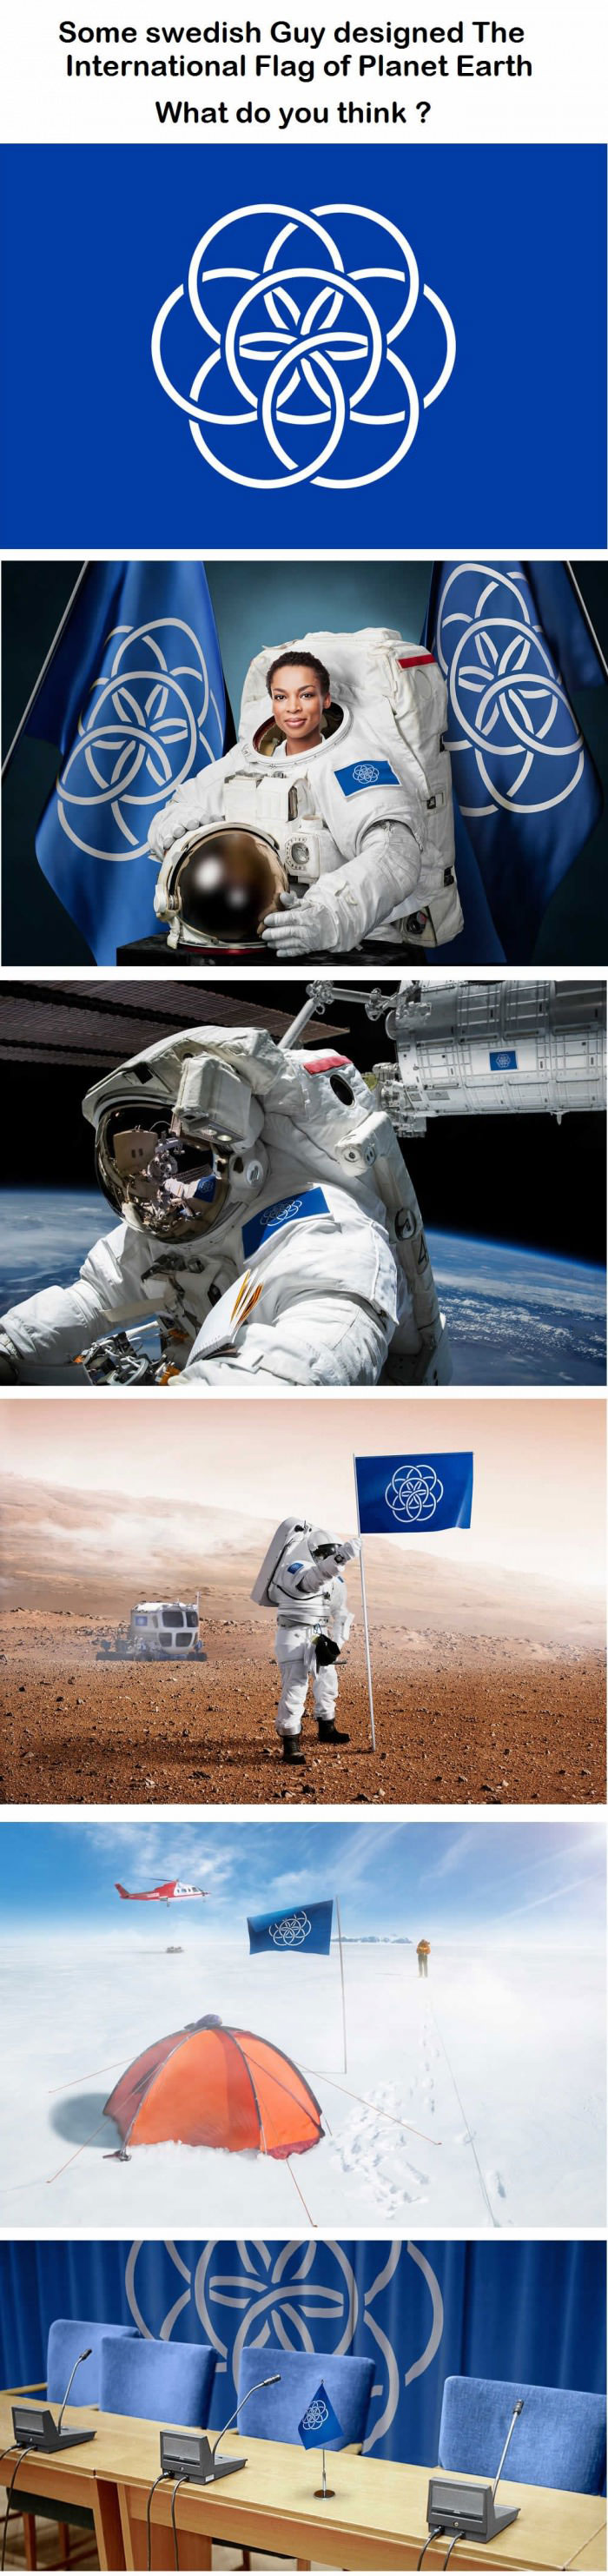 some swedish guy designed the international flag of planet earth, what do you think?